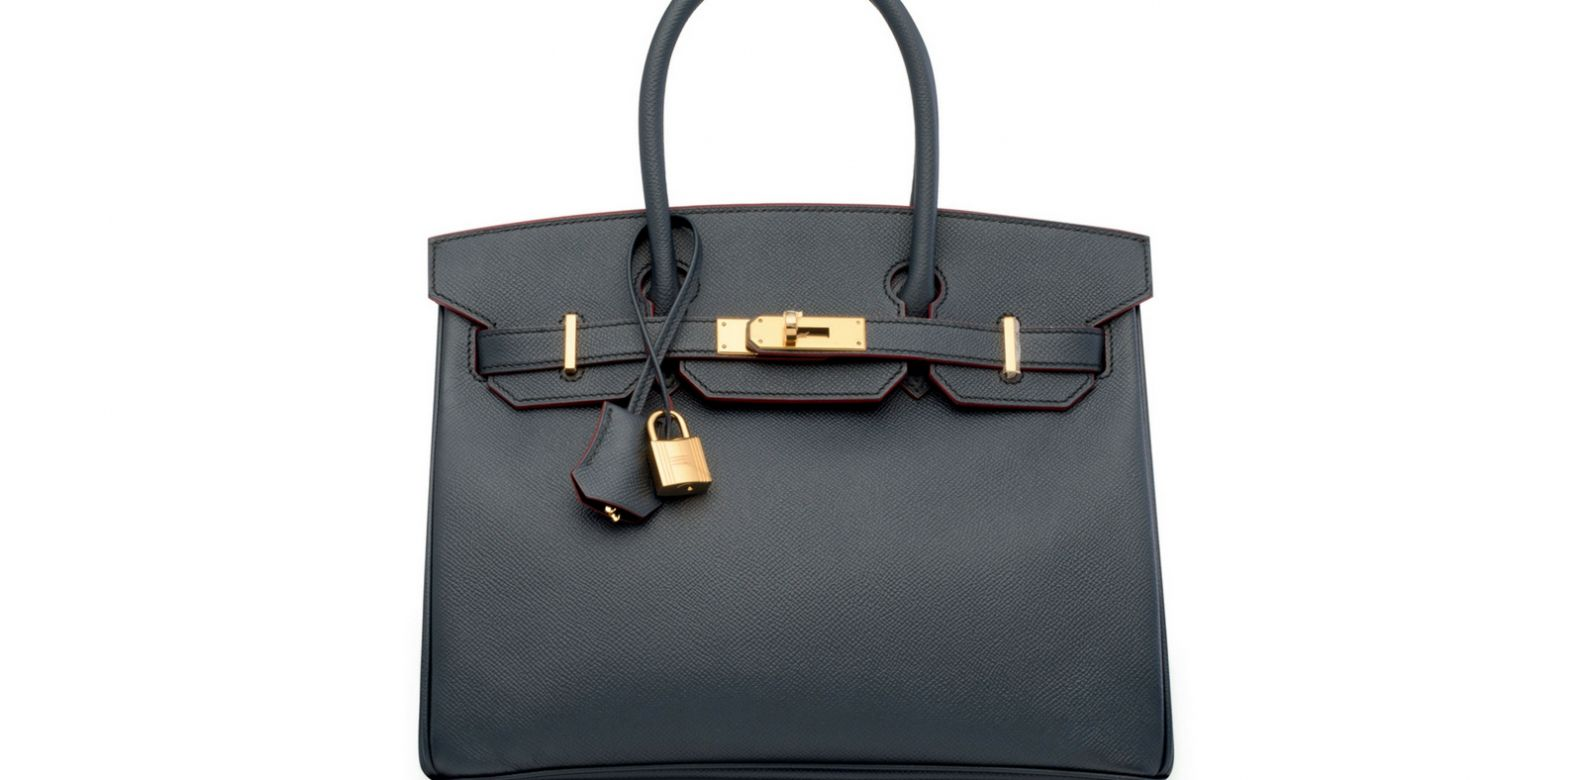 Limited edition blue indigo & rouge H contour Birkin 30 with gold hardware, Hermès, 2016. (Photo: Courtesy of Christie's)